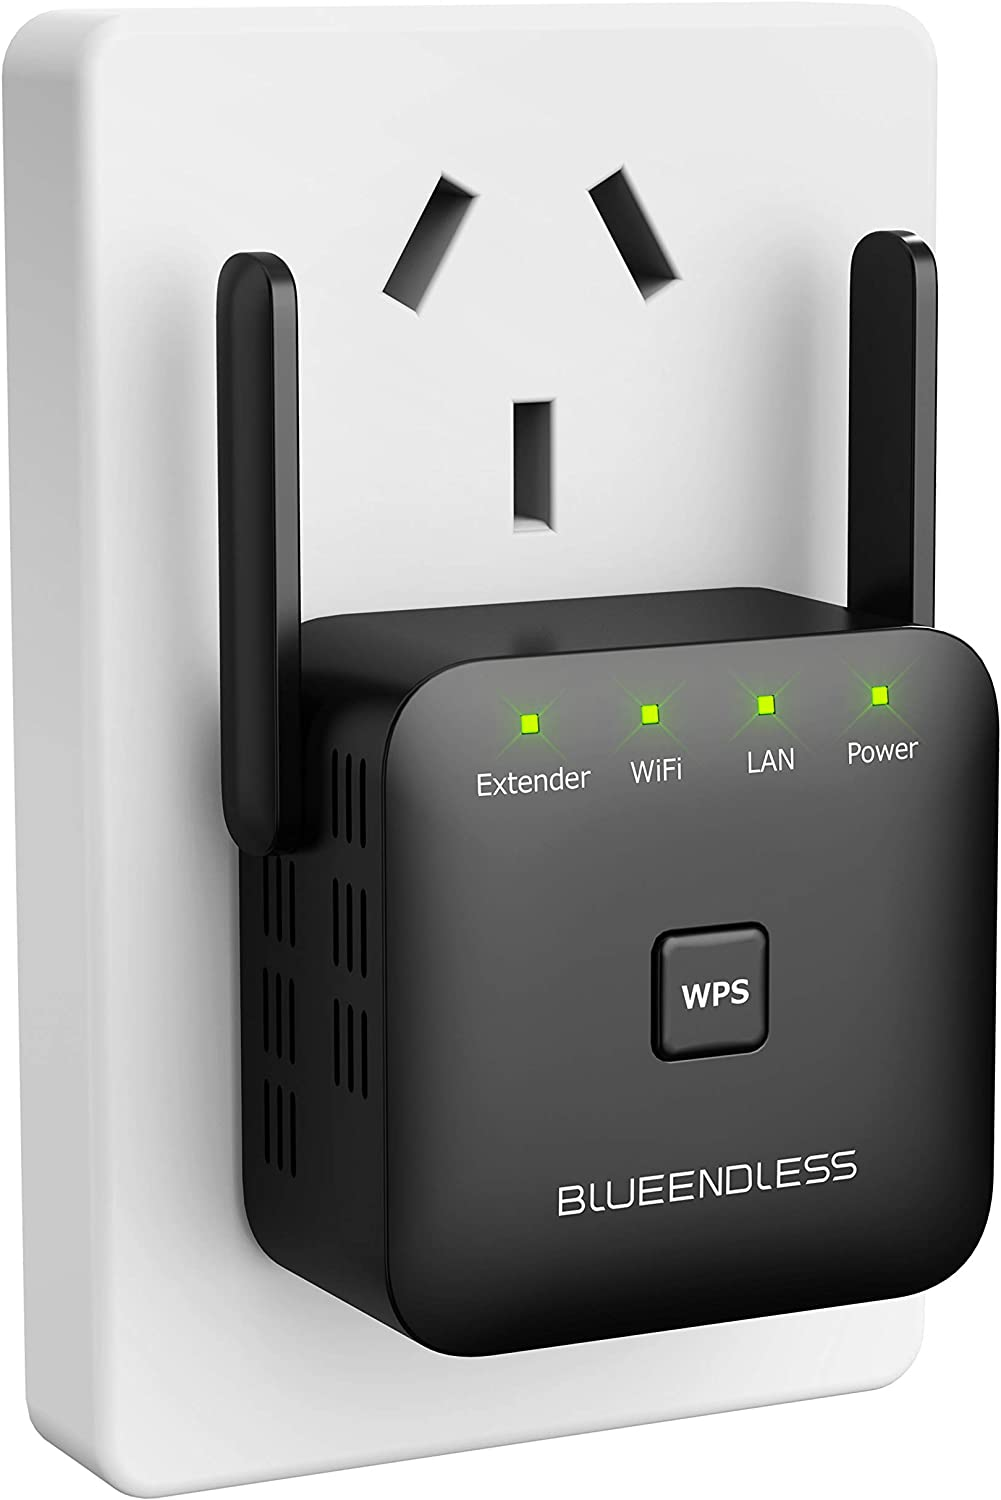 Blueendless Selling rankings Superboost WiFi Extender Signal Booster C All stores are sold Range Long